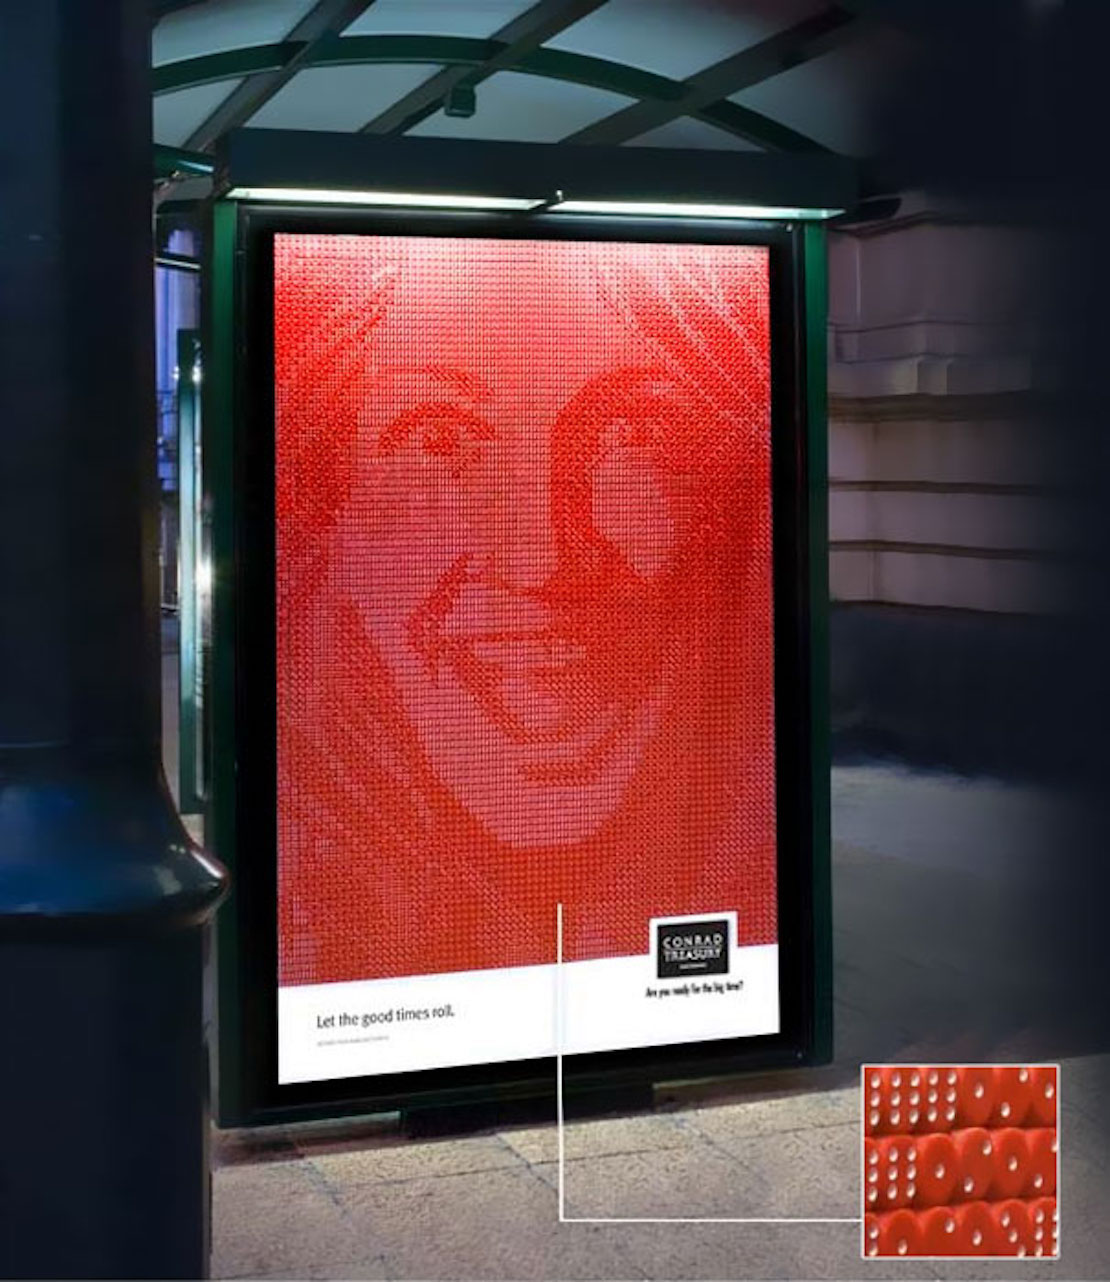 48 Fresh And Creative Bus Stop Advertisements That Will Blow Your Mind 15